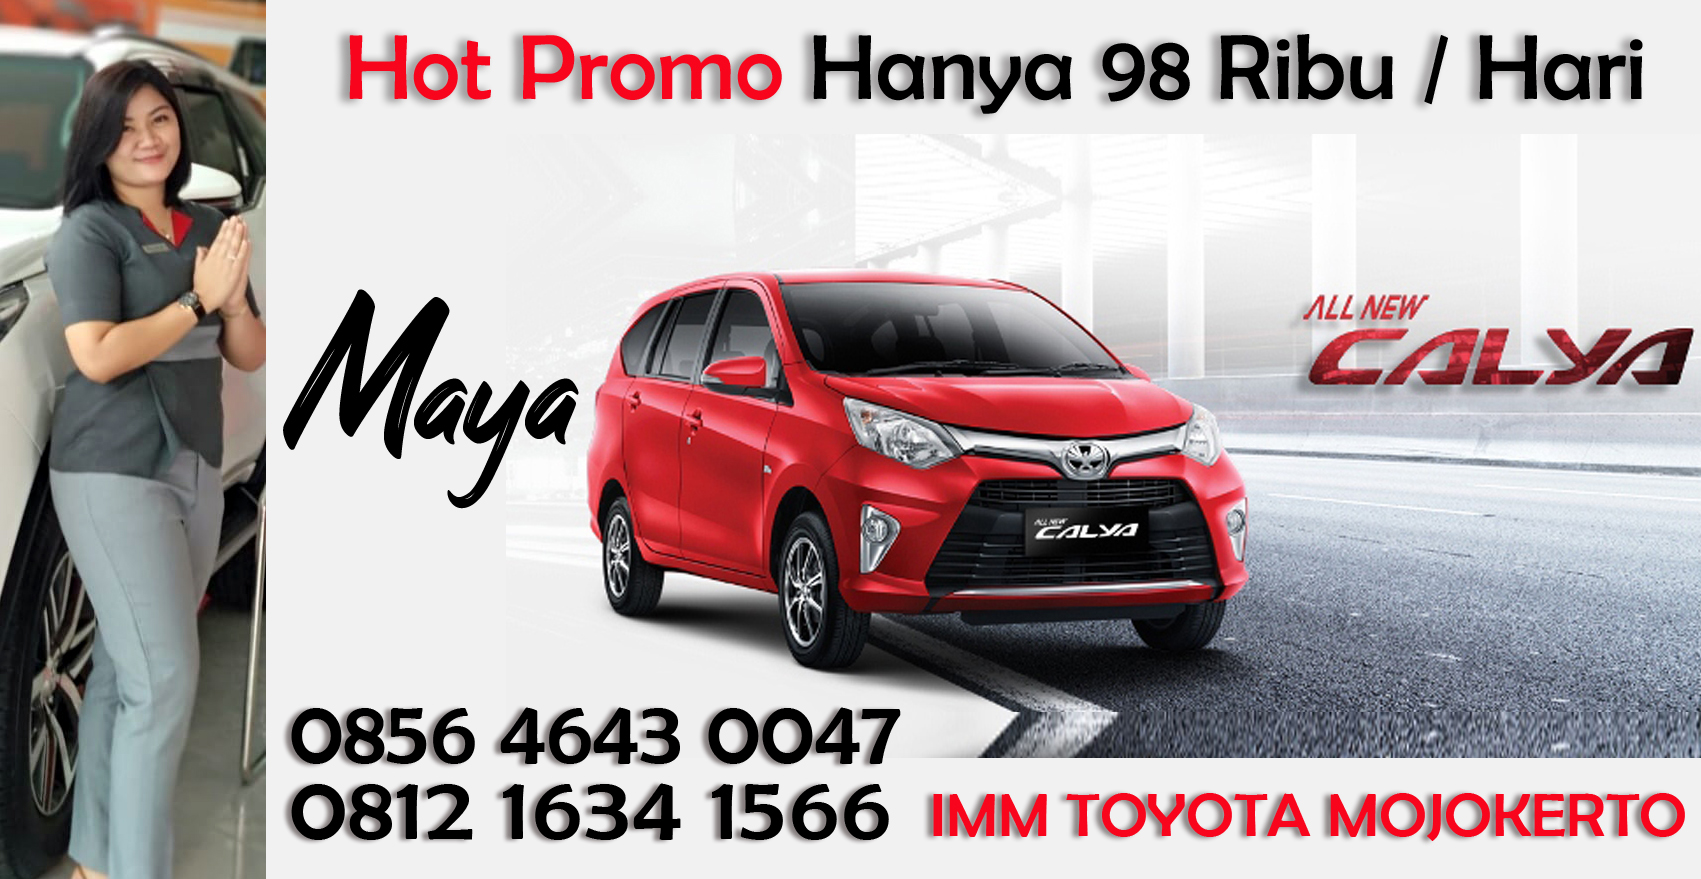 Hot Promo Toyota